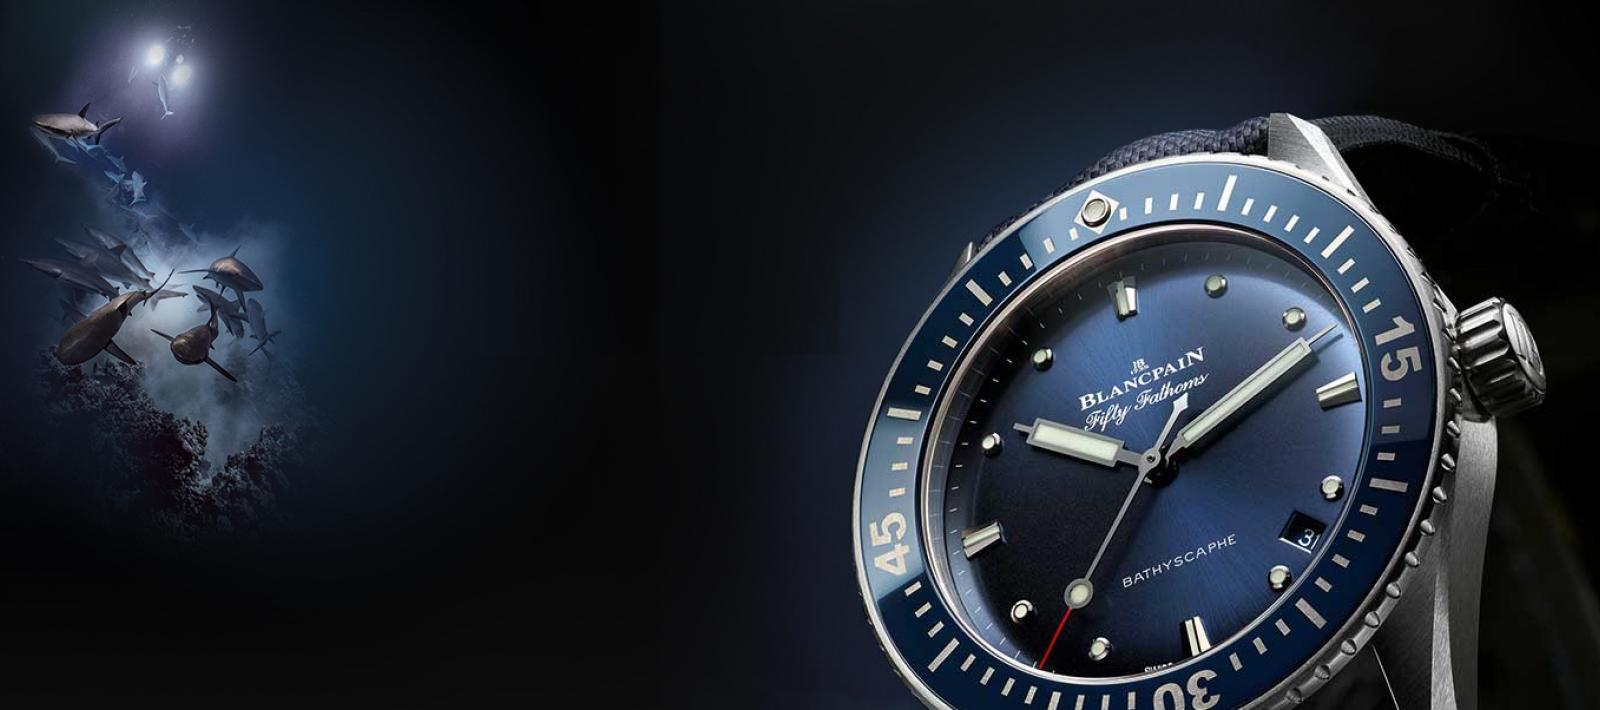 Best watch brands - Blancpain